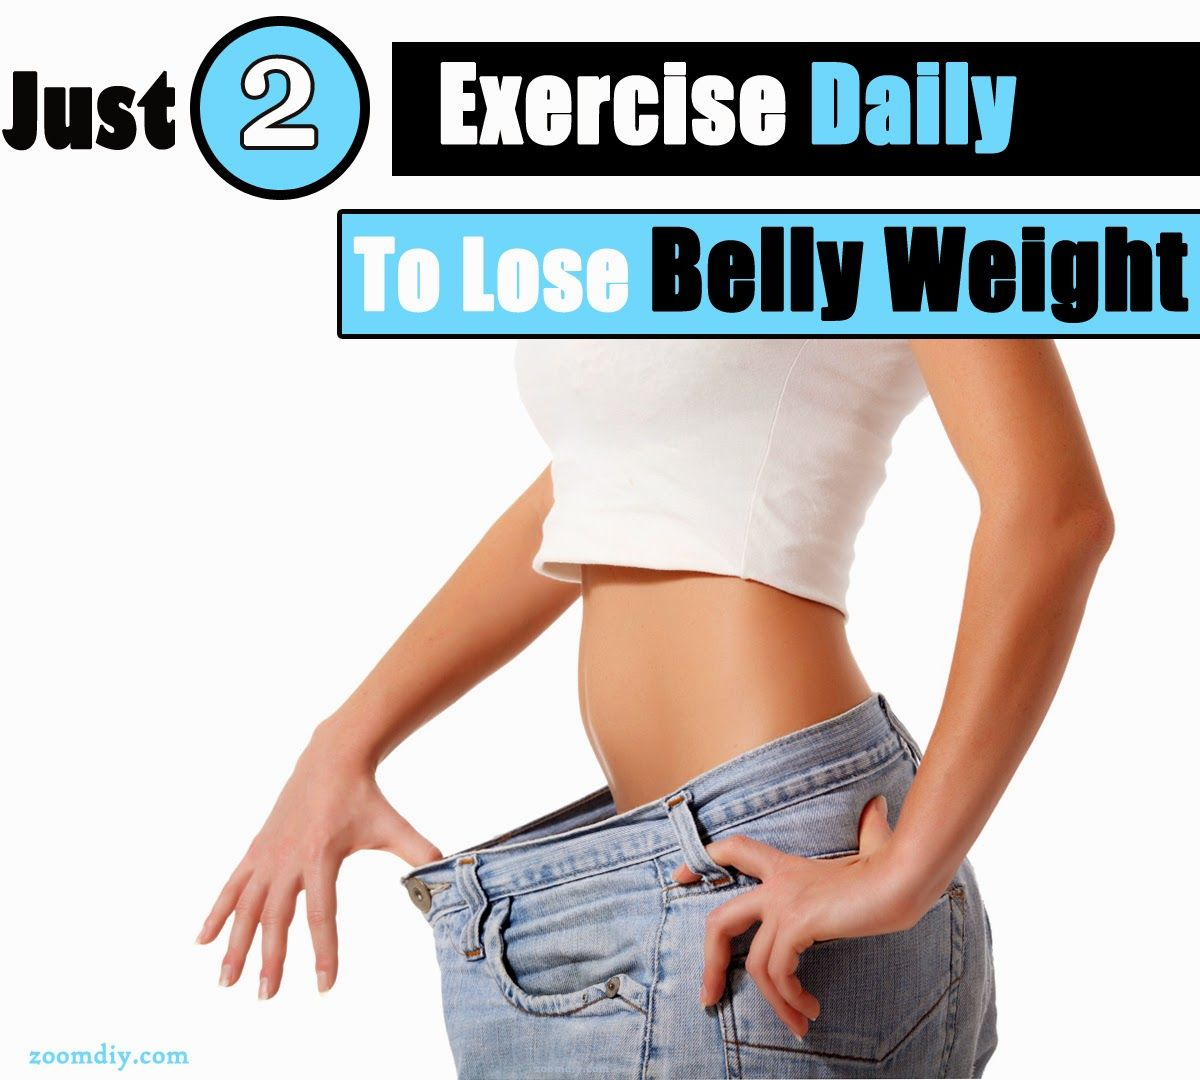 Zoomdiy the 2 exercises which promises your belly weight loss just 2 exercise daily to lose your belly weight ccuart Choice Image